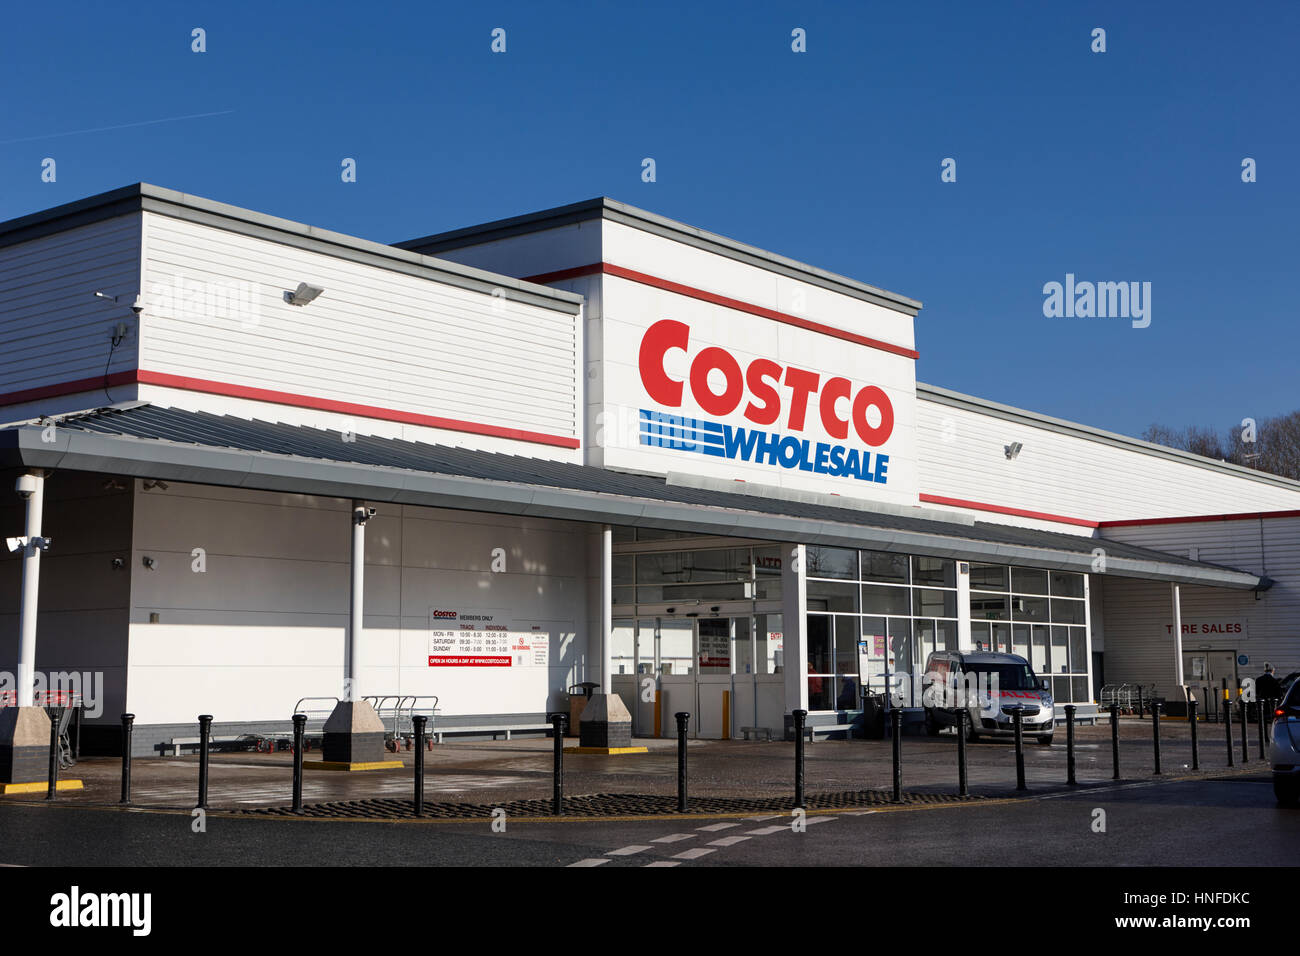 costco wholesale store in liverpool uk - Stock Image